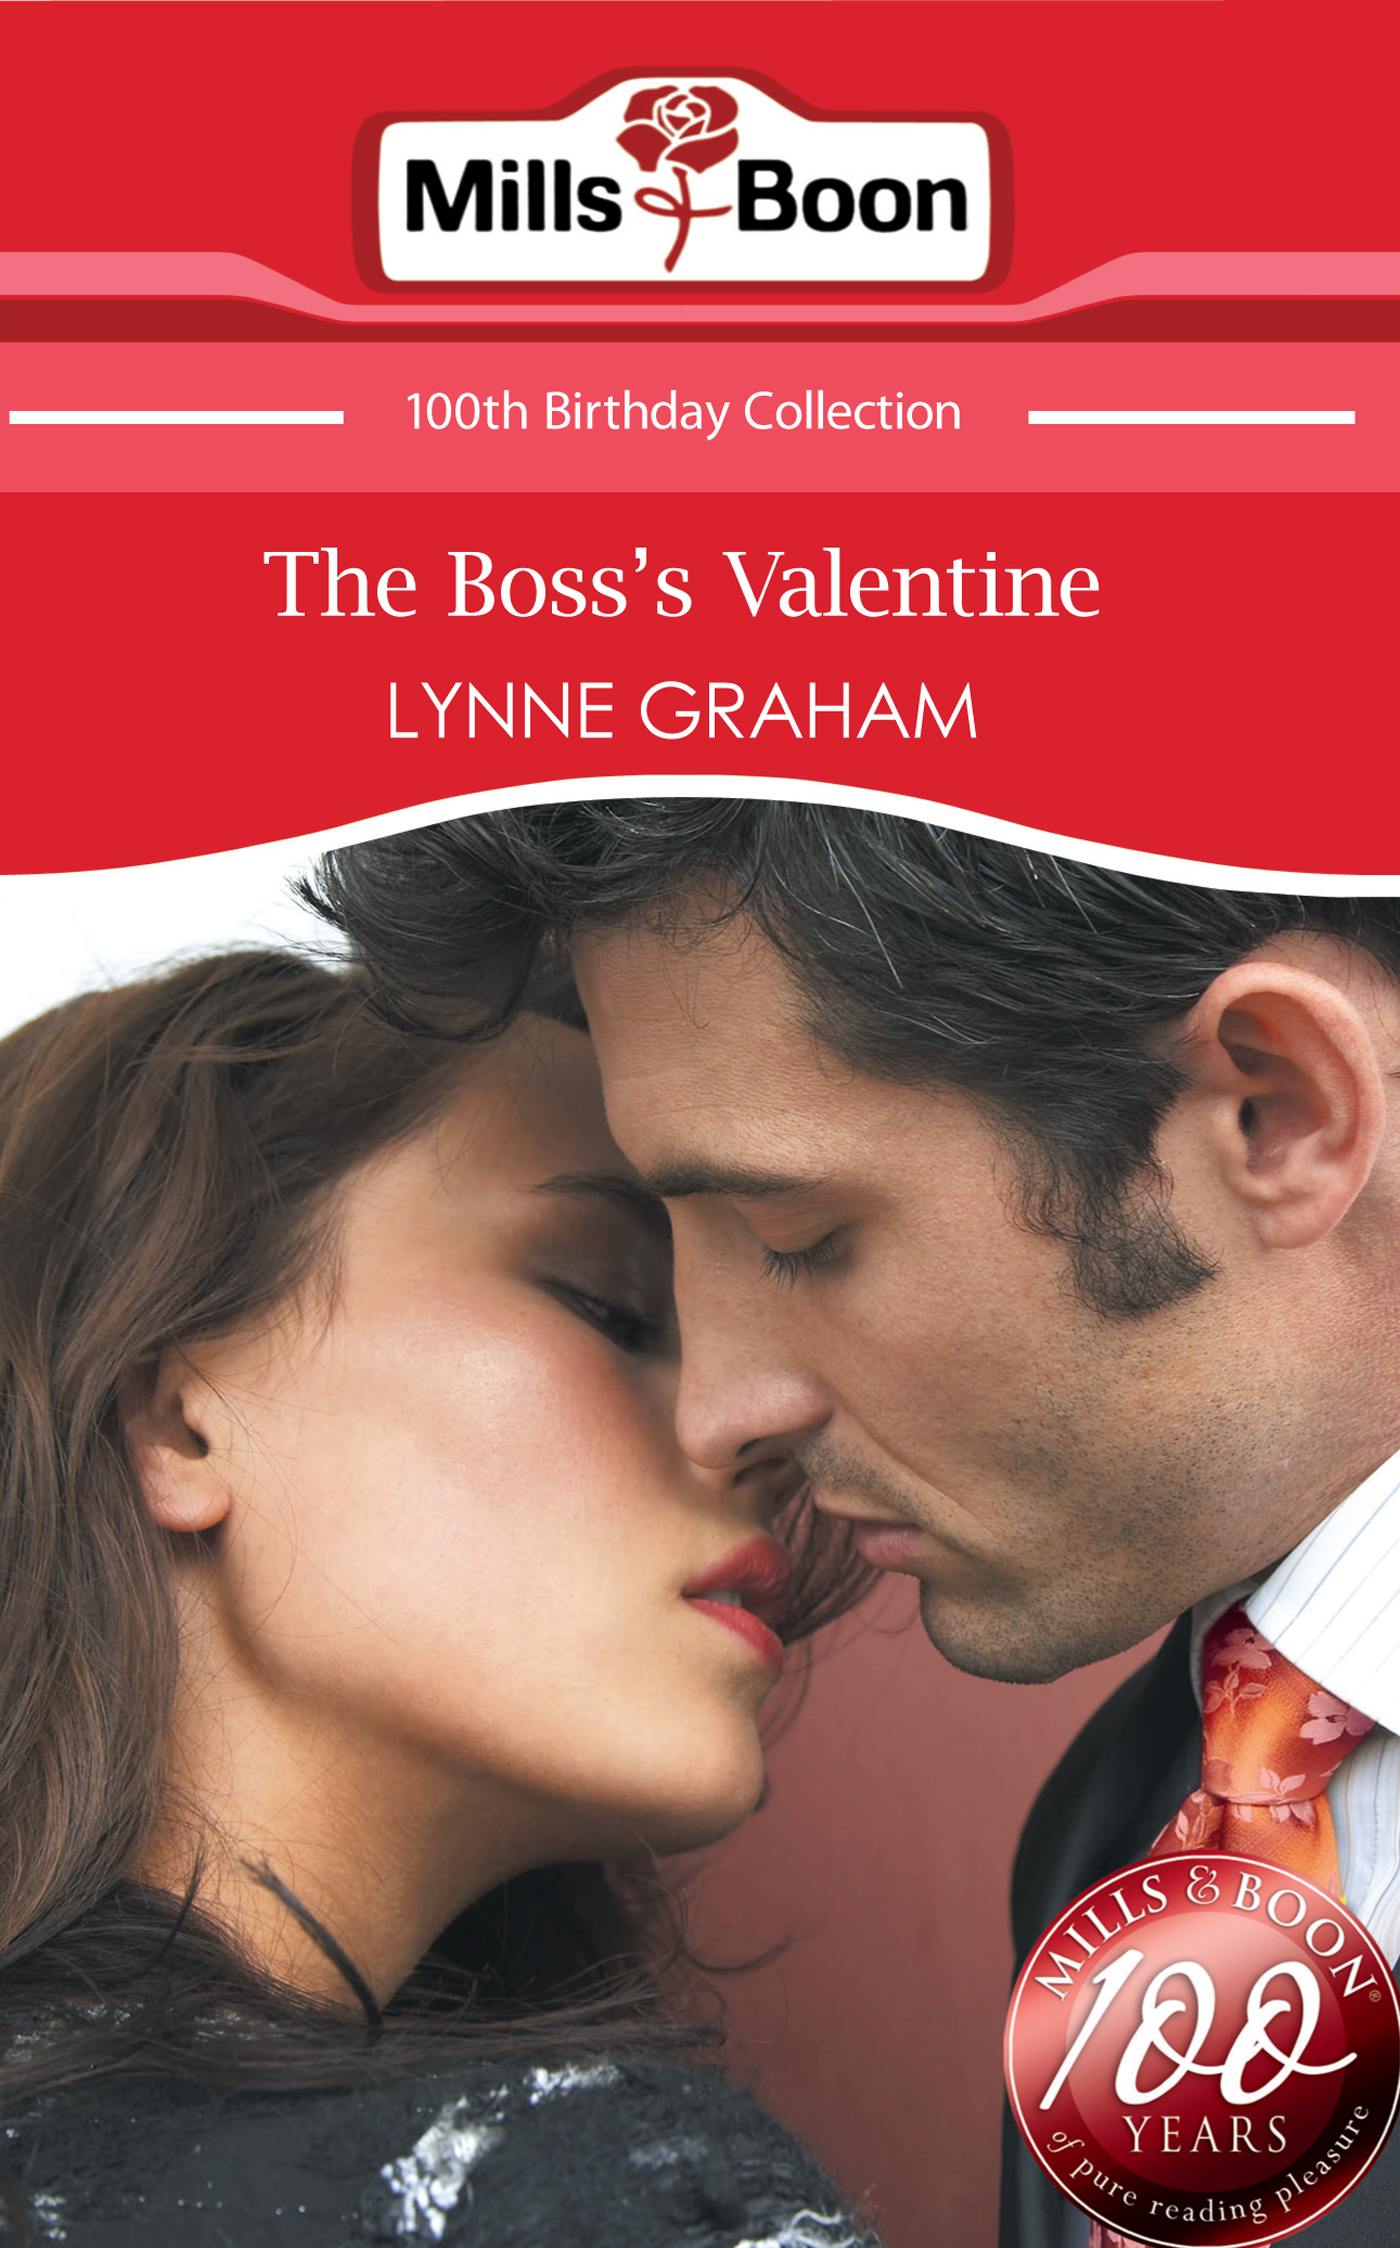 The Boss's Valentine (Mills & Boon Short Stories)